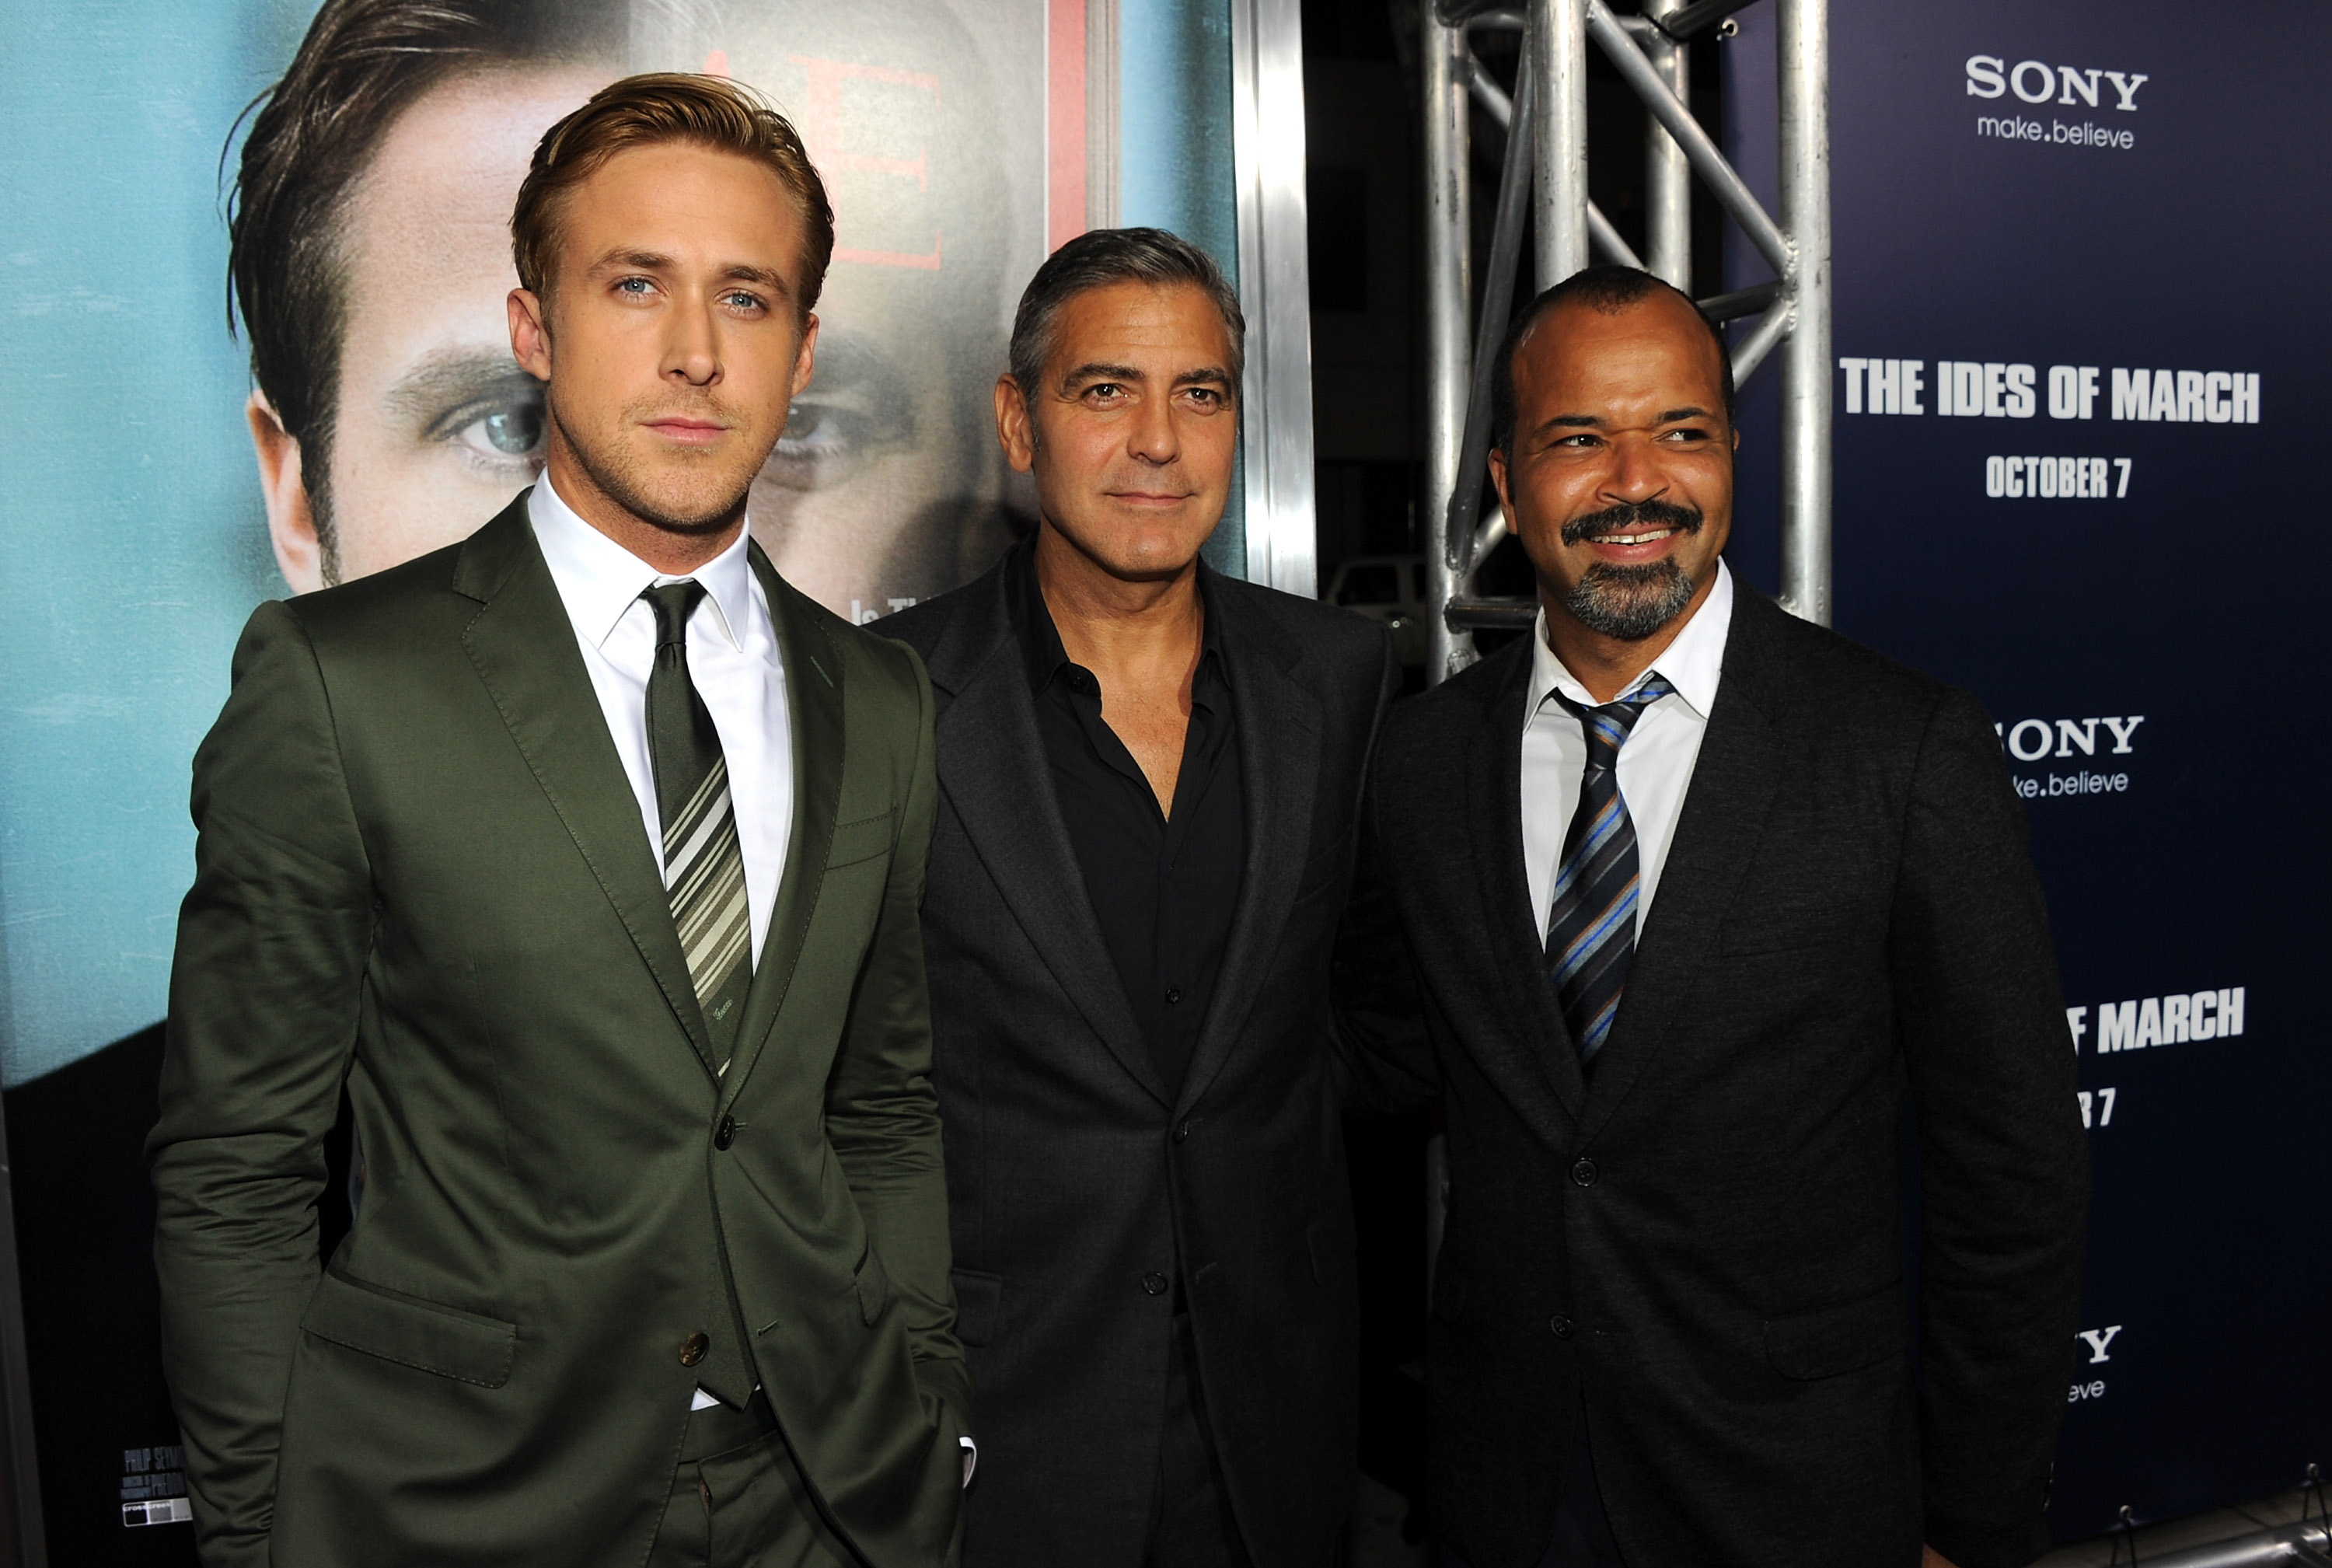 ides of march movie